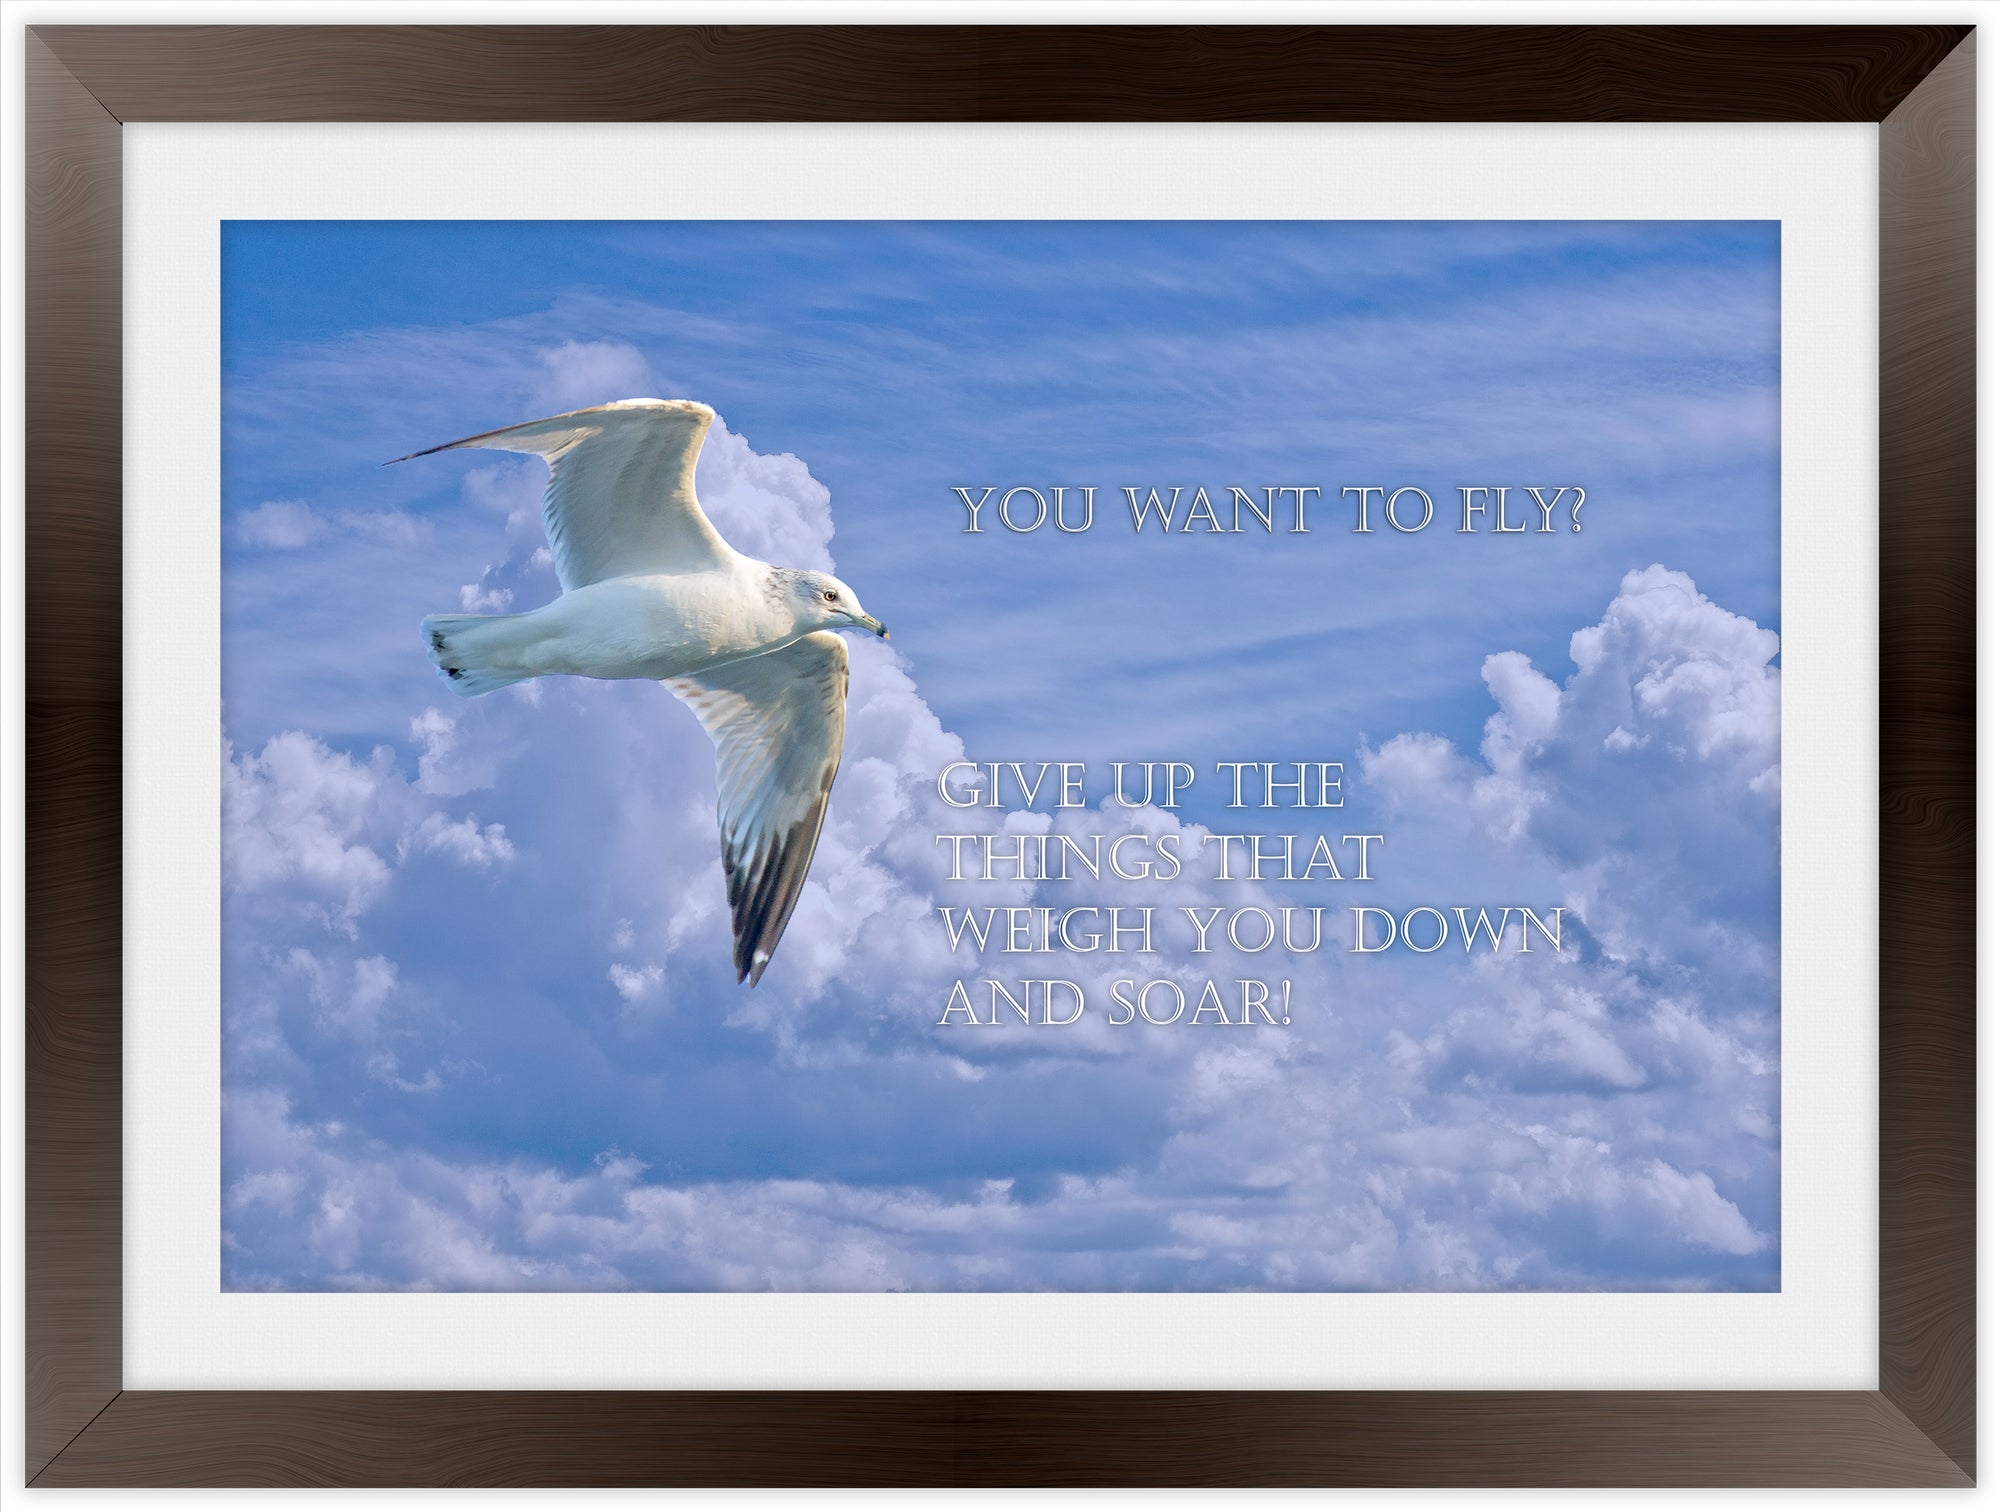 Want to Fly? - Inspirational Frame Art Giclee'